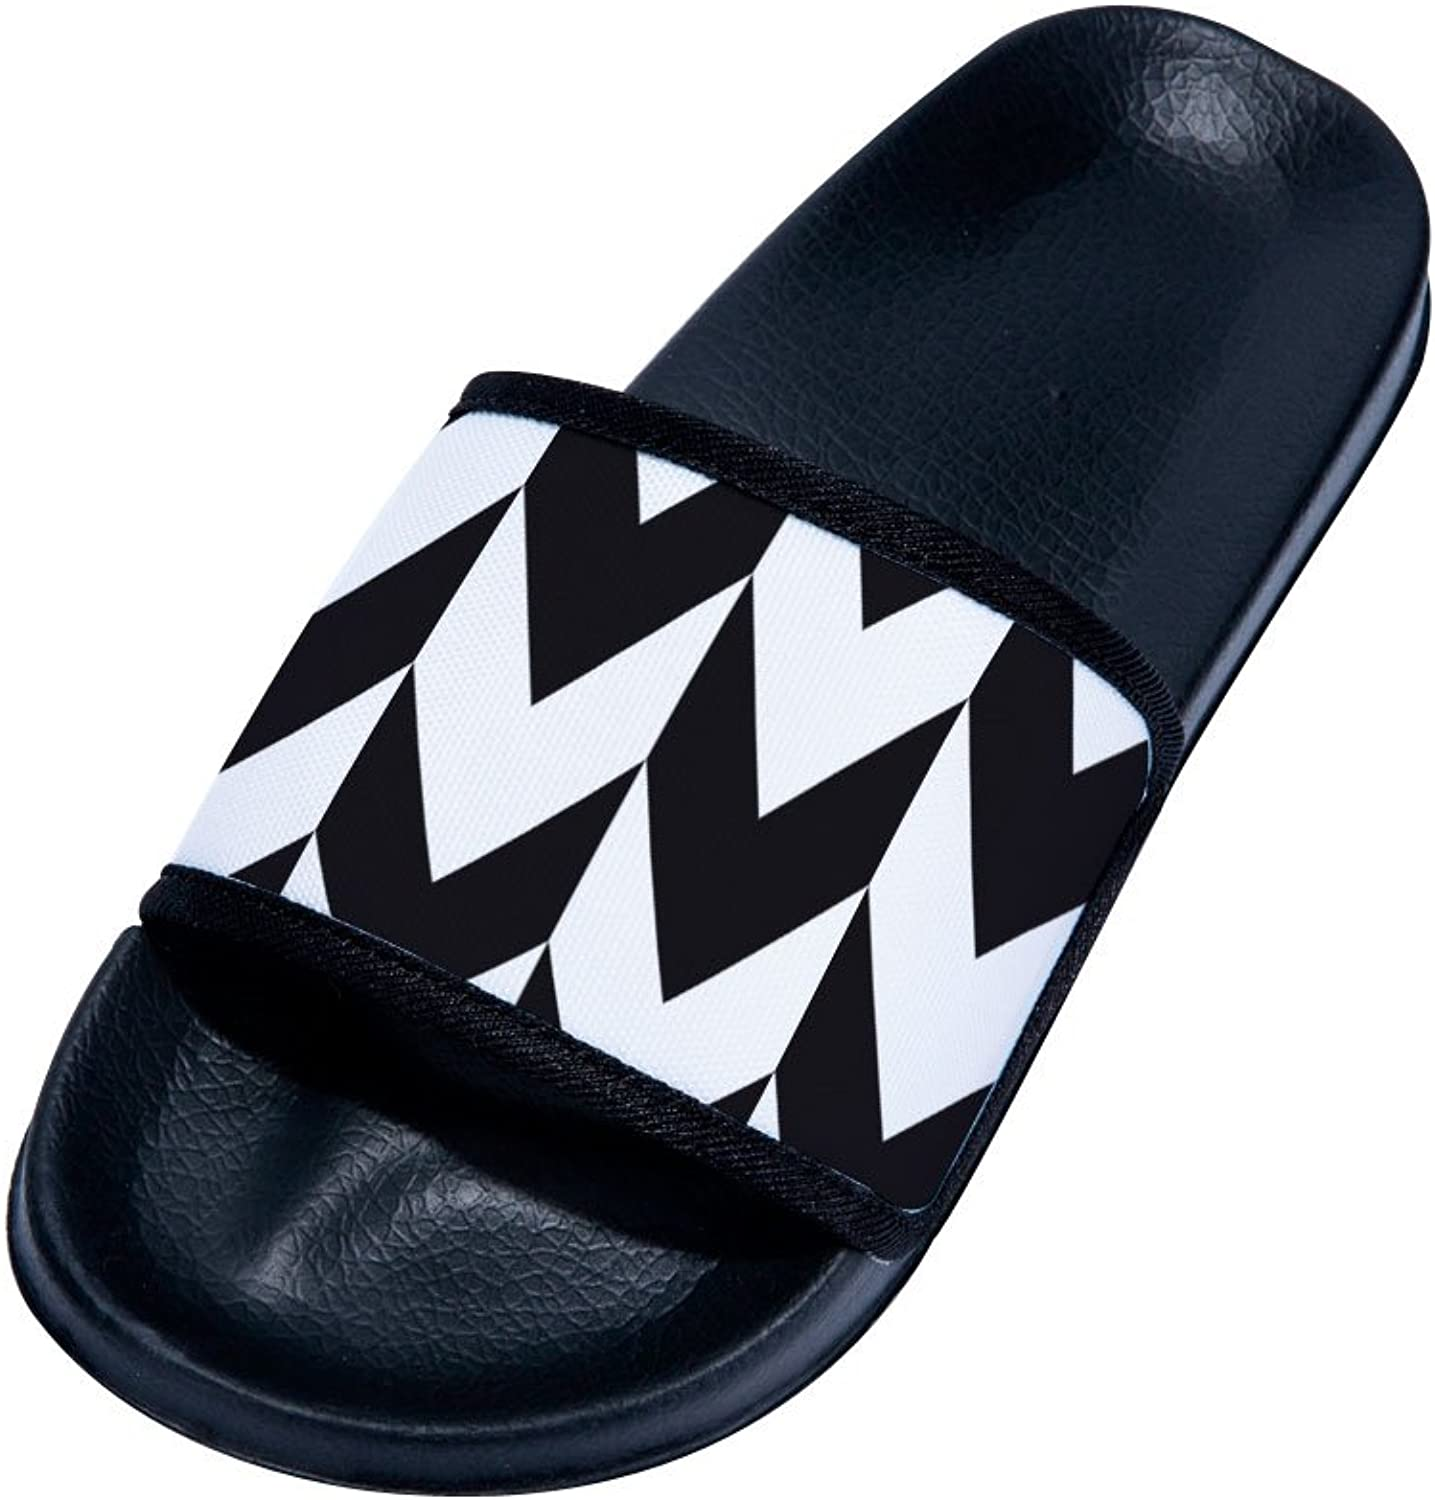 Buteri Black-White Splice Family Quick-Drying Non-Slip Slippers